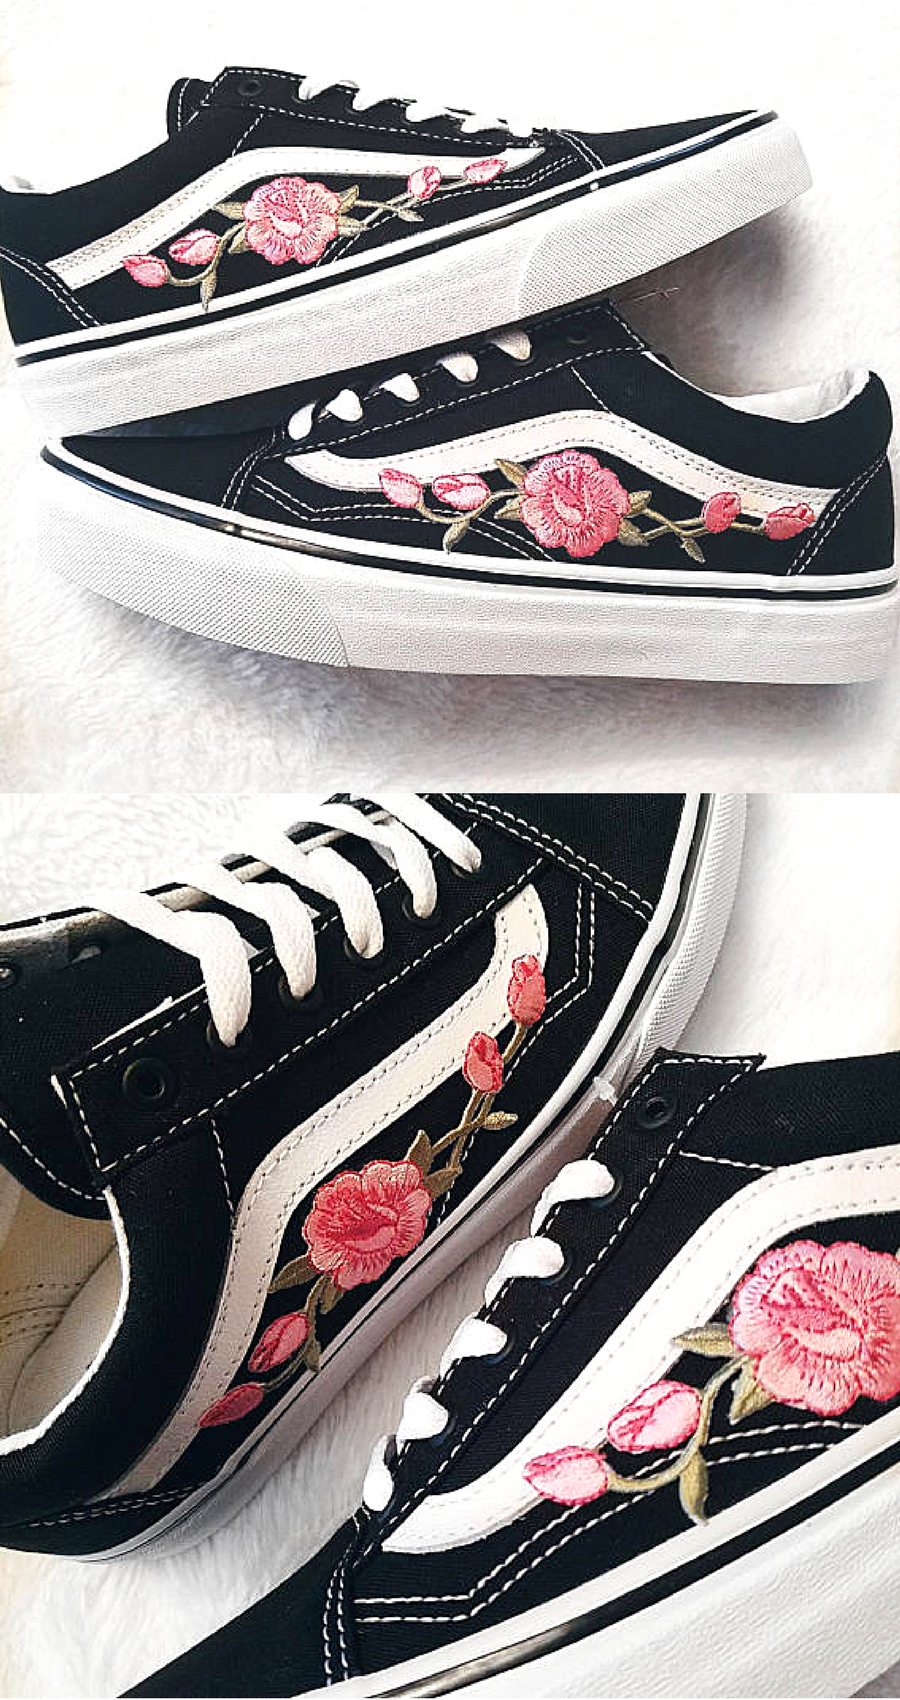 fd62199e8e9  99 Rose Buds Pink Blk Unisex Custom Rose Embroidered-Patch Vans Old-Skool  Sneakers. Mens and Womens Size Available. They are genuine Vans Sneakers  that are ...